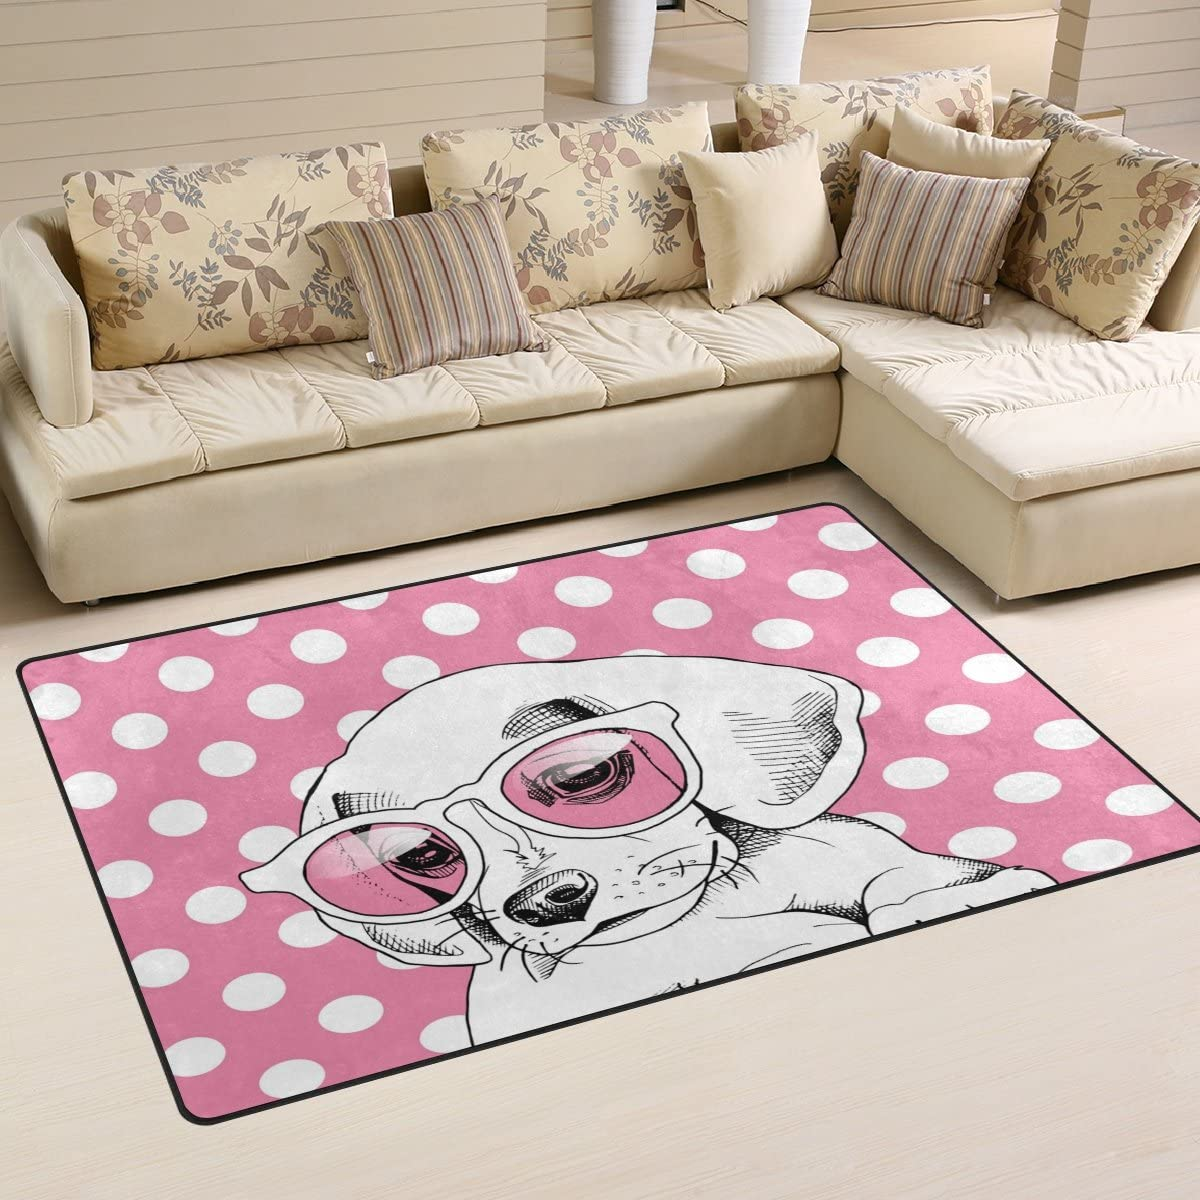 WOZO Pink Polka Dot Puppy Dog in Glasses Area Rug Rugs Non-Slip Floor Mat Doormats for Living Room Bedroom 60 x 39 inches